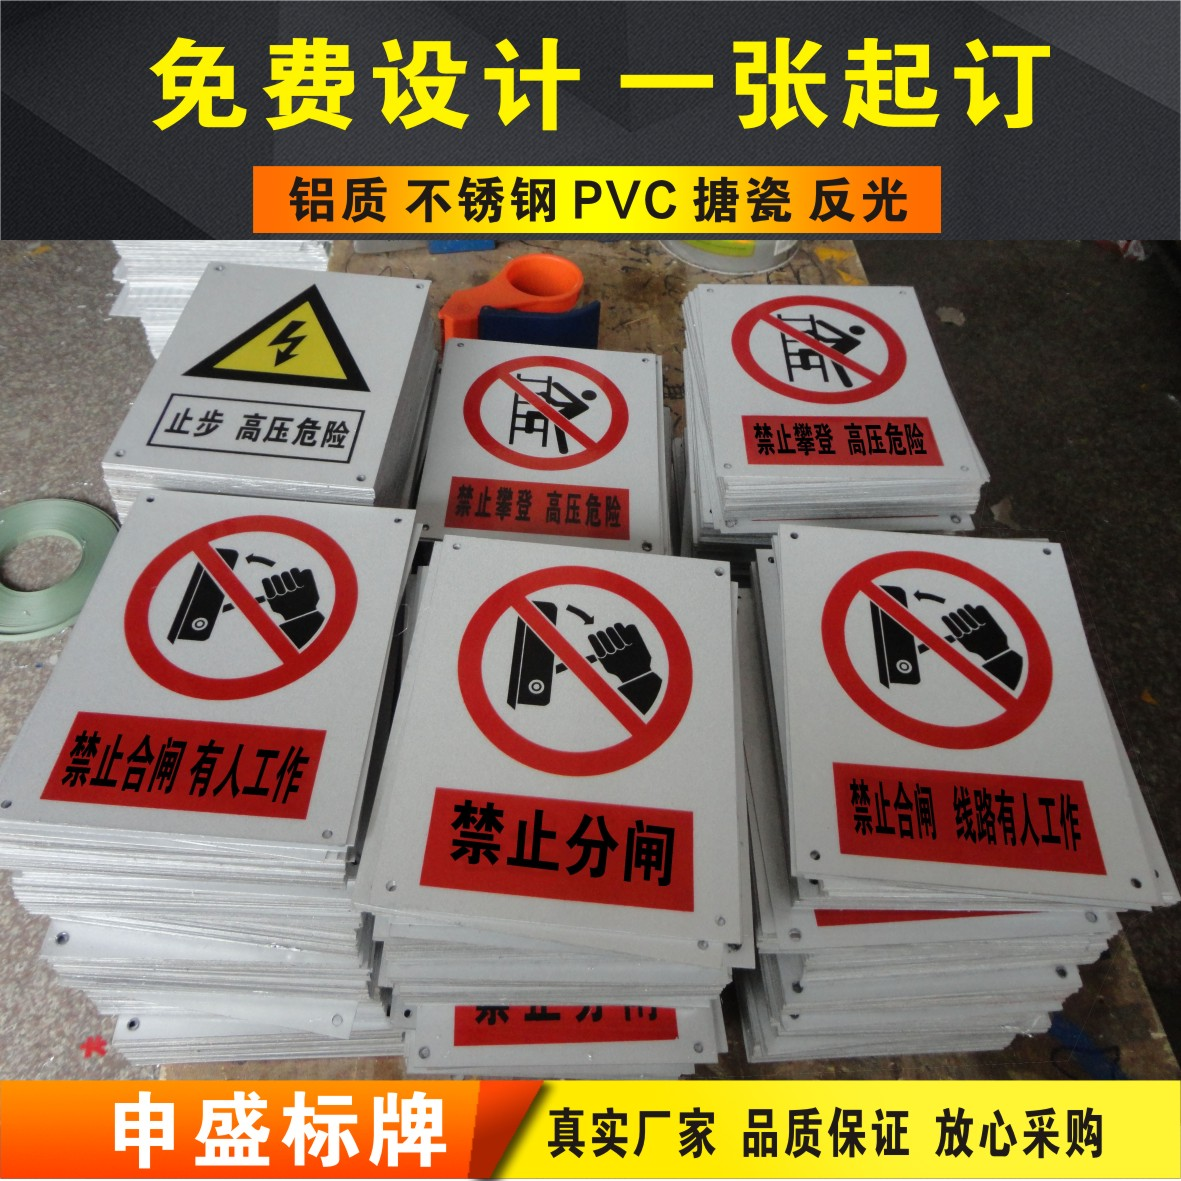 Power sign reflective safety sign power warning sign aluminum alloy no climbing stop high voltage danger